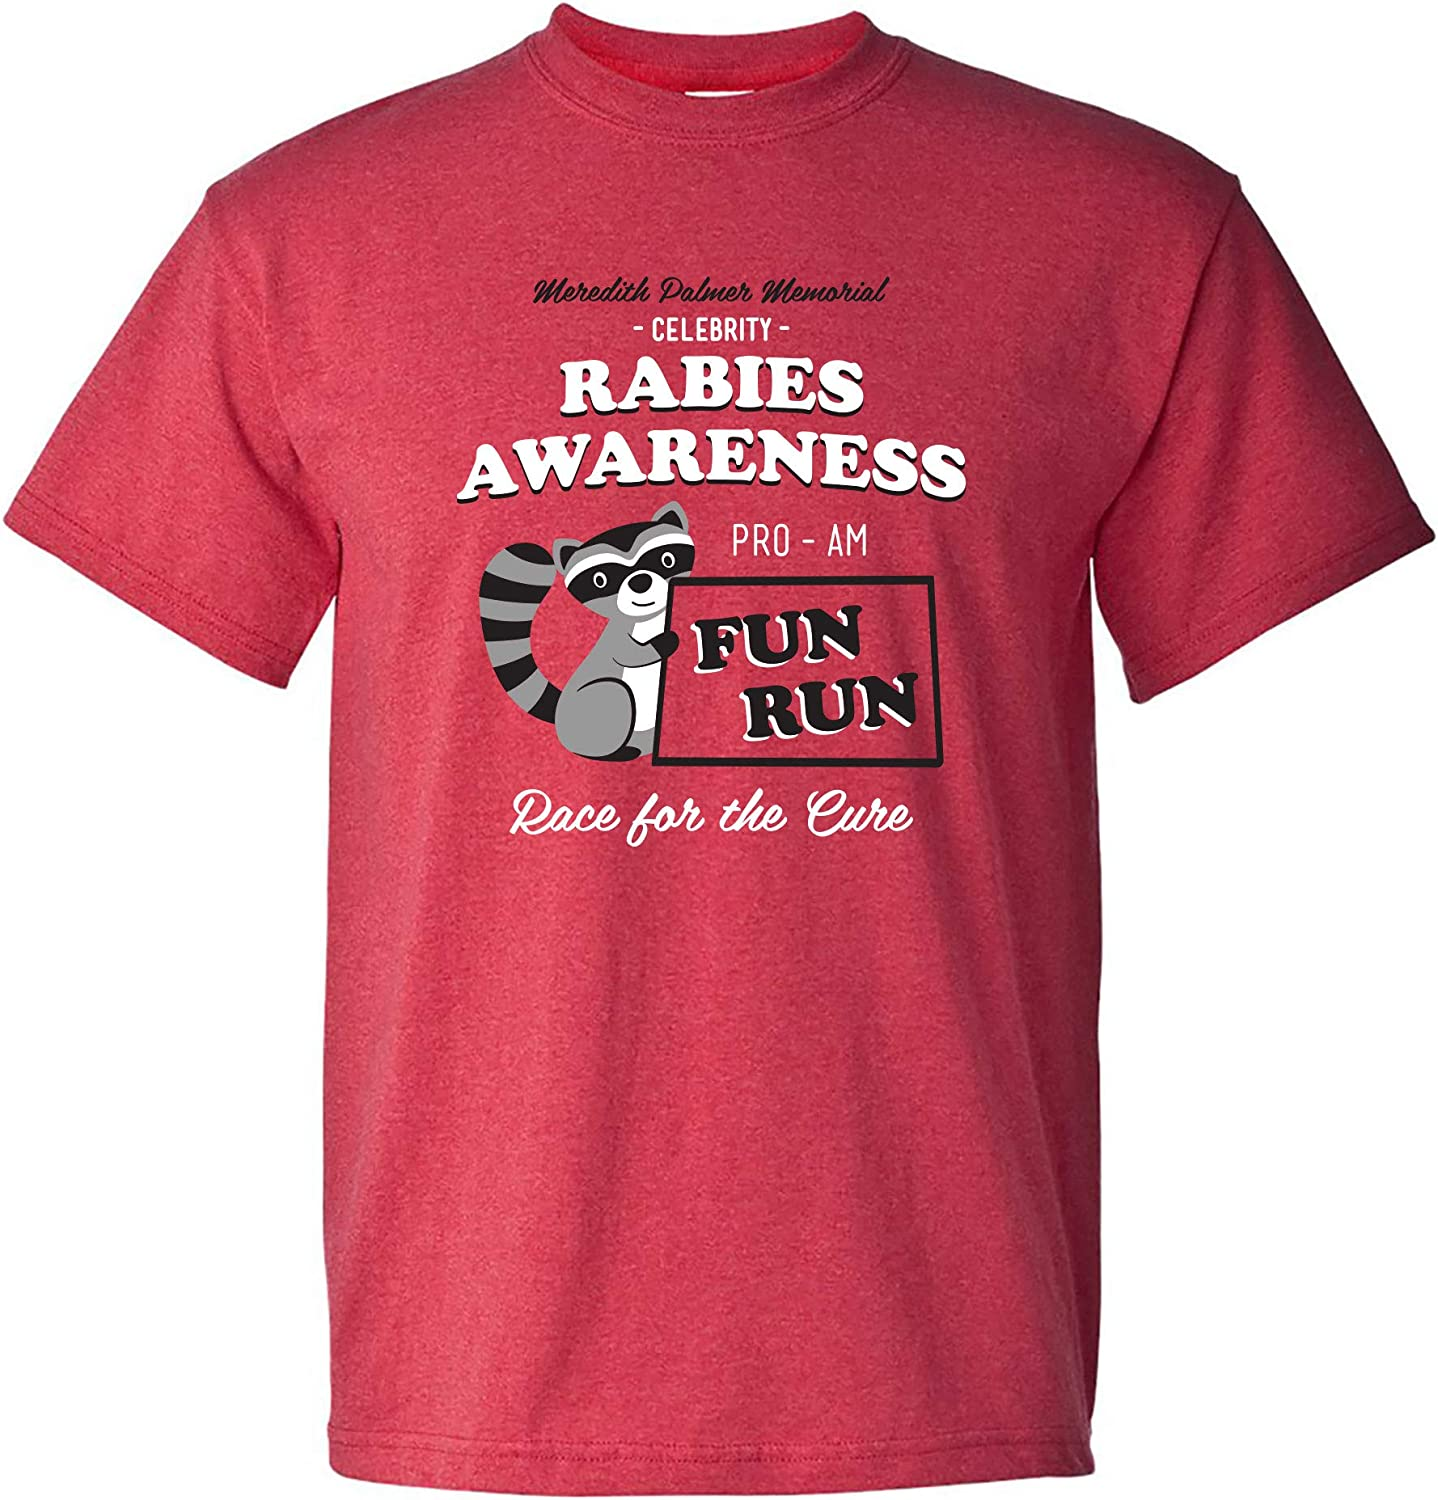 Rabies Awareness Fun Run - Funny TV Comedy Running T Shirt